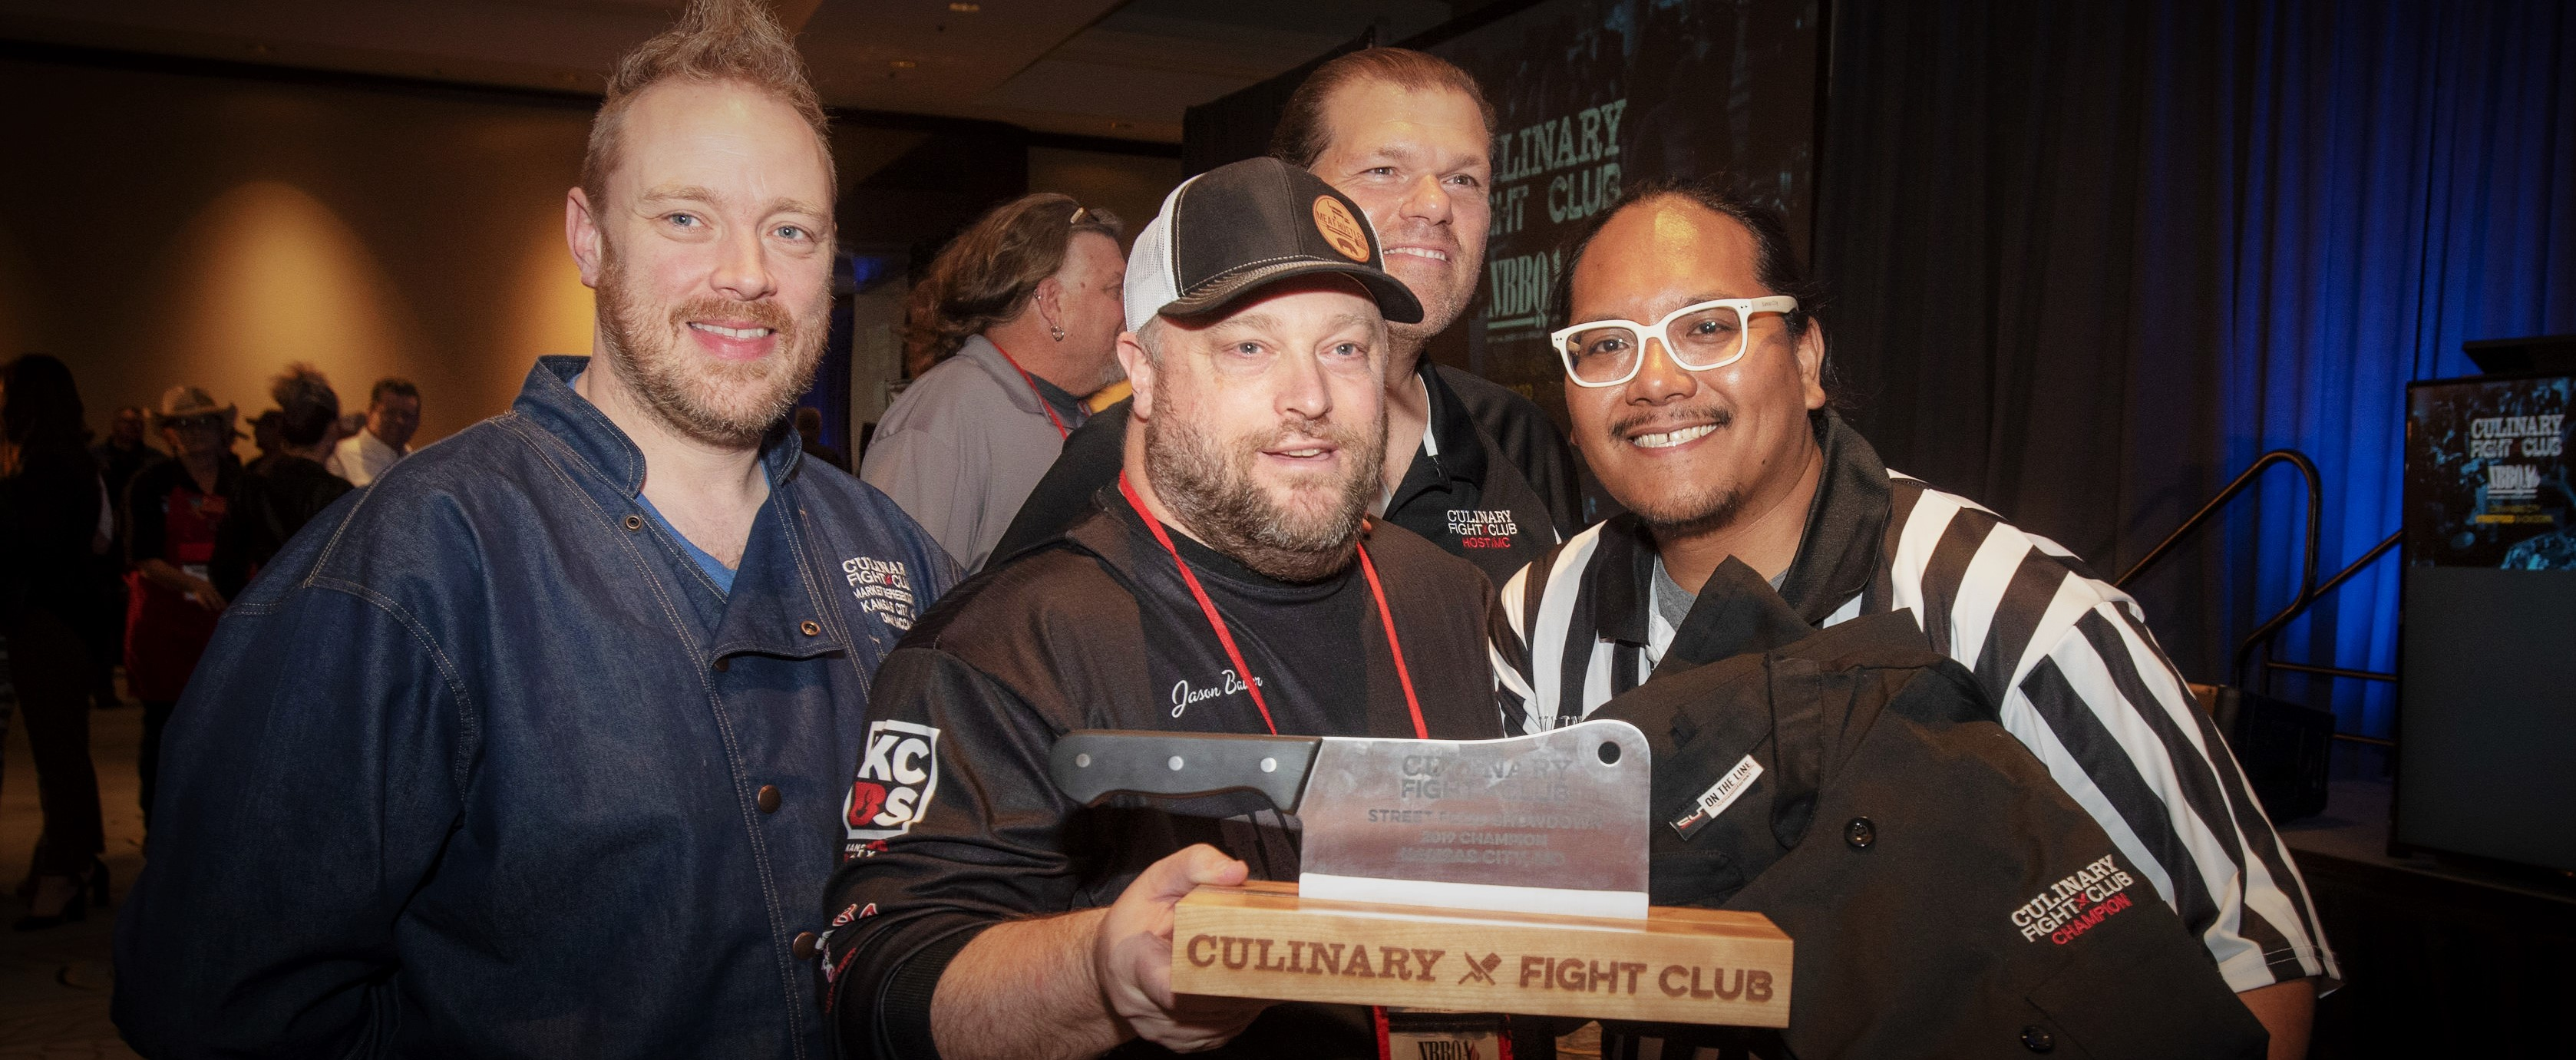 2019 NBBQA Culinary Fight Club Champion Bason Bauer